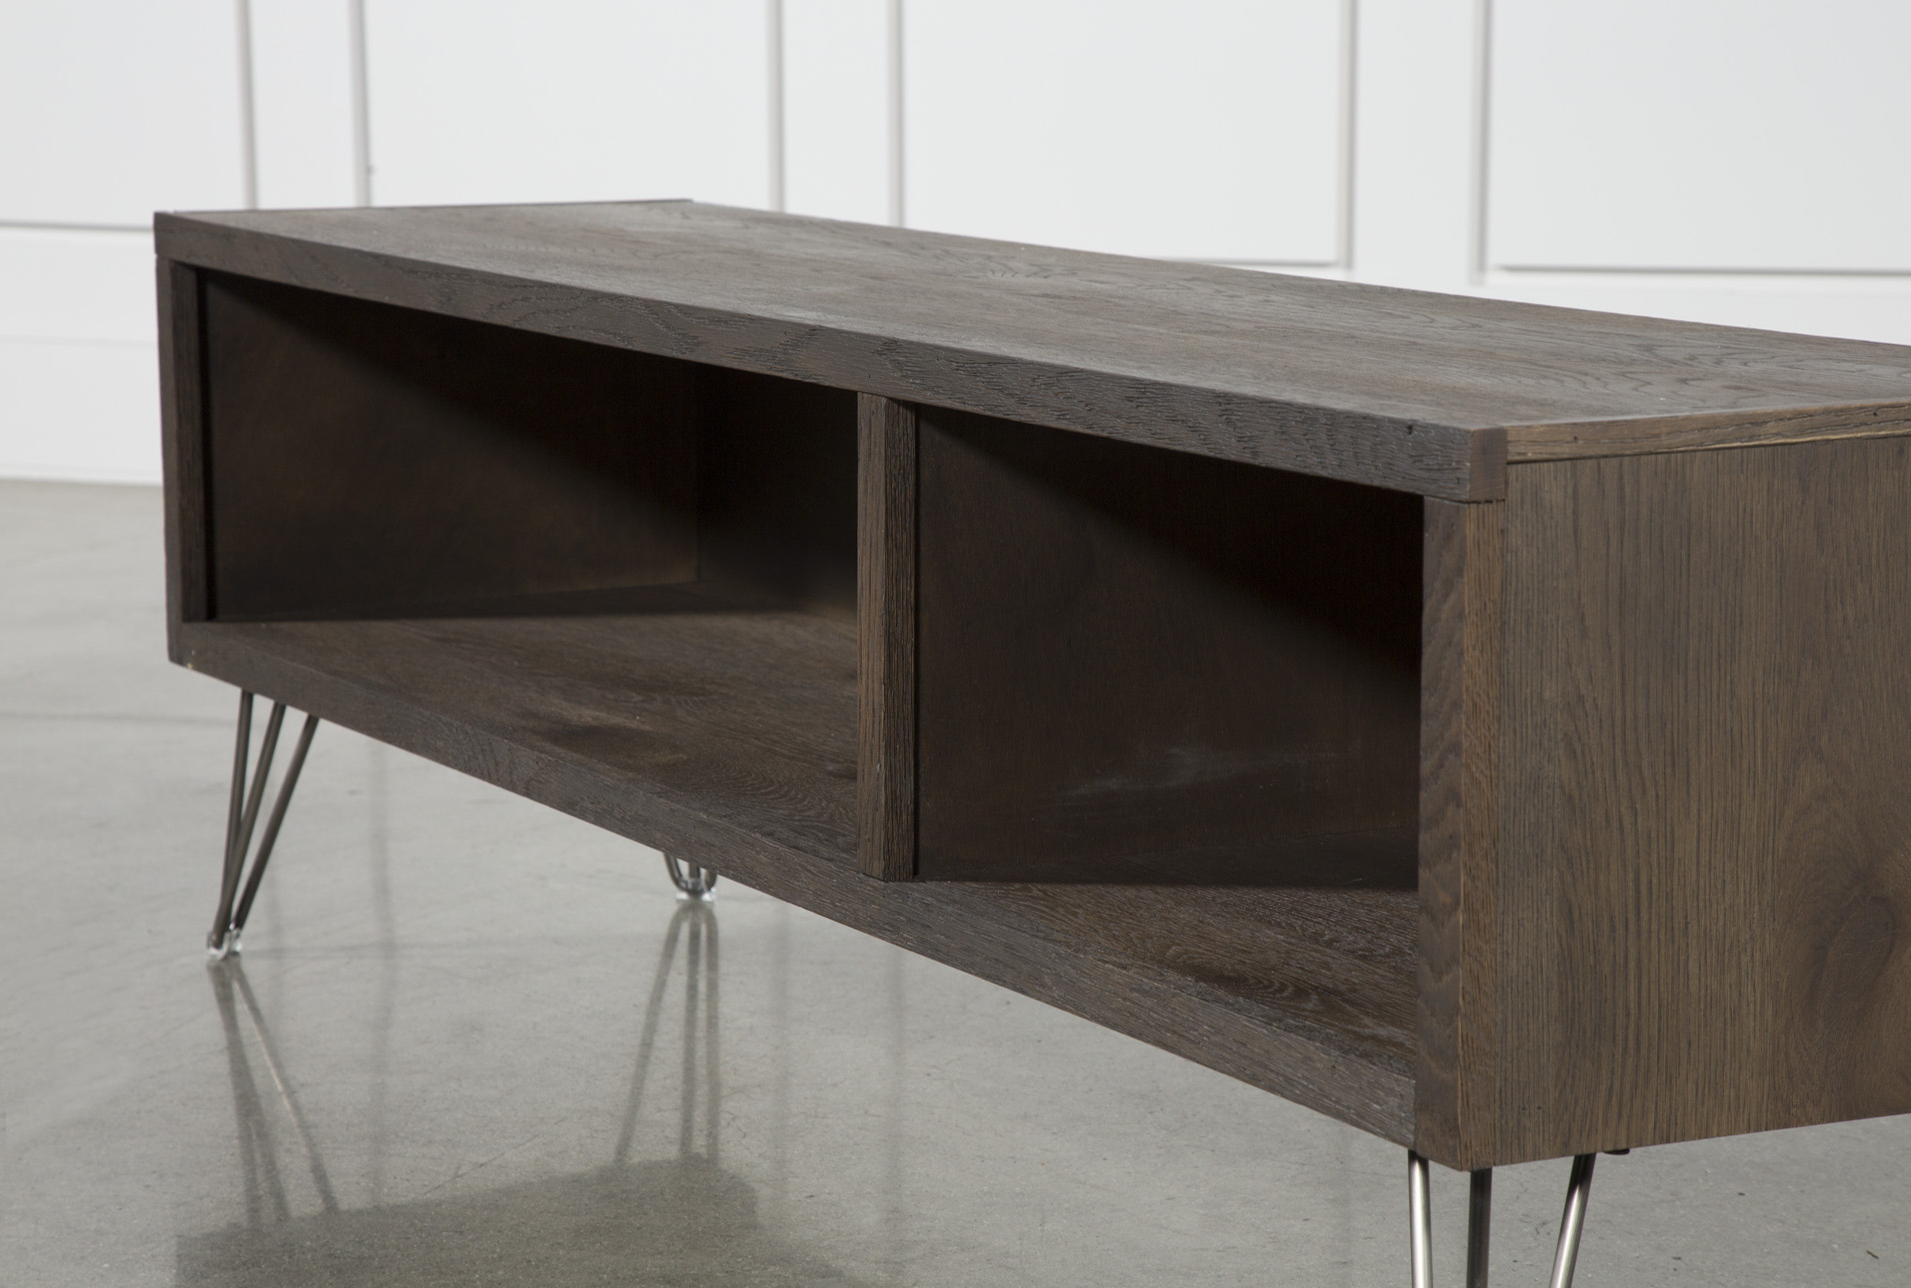 Melrose Barnhouse Brown 65 Inch Lowboy Tv Stand | Lowboy And Products For Melrose Barnhouse Brown 65 Inch Lowboy Tv Stands (View 2 of 10)